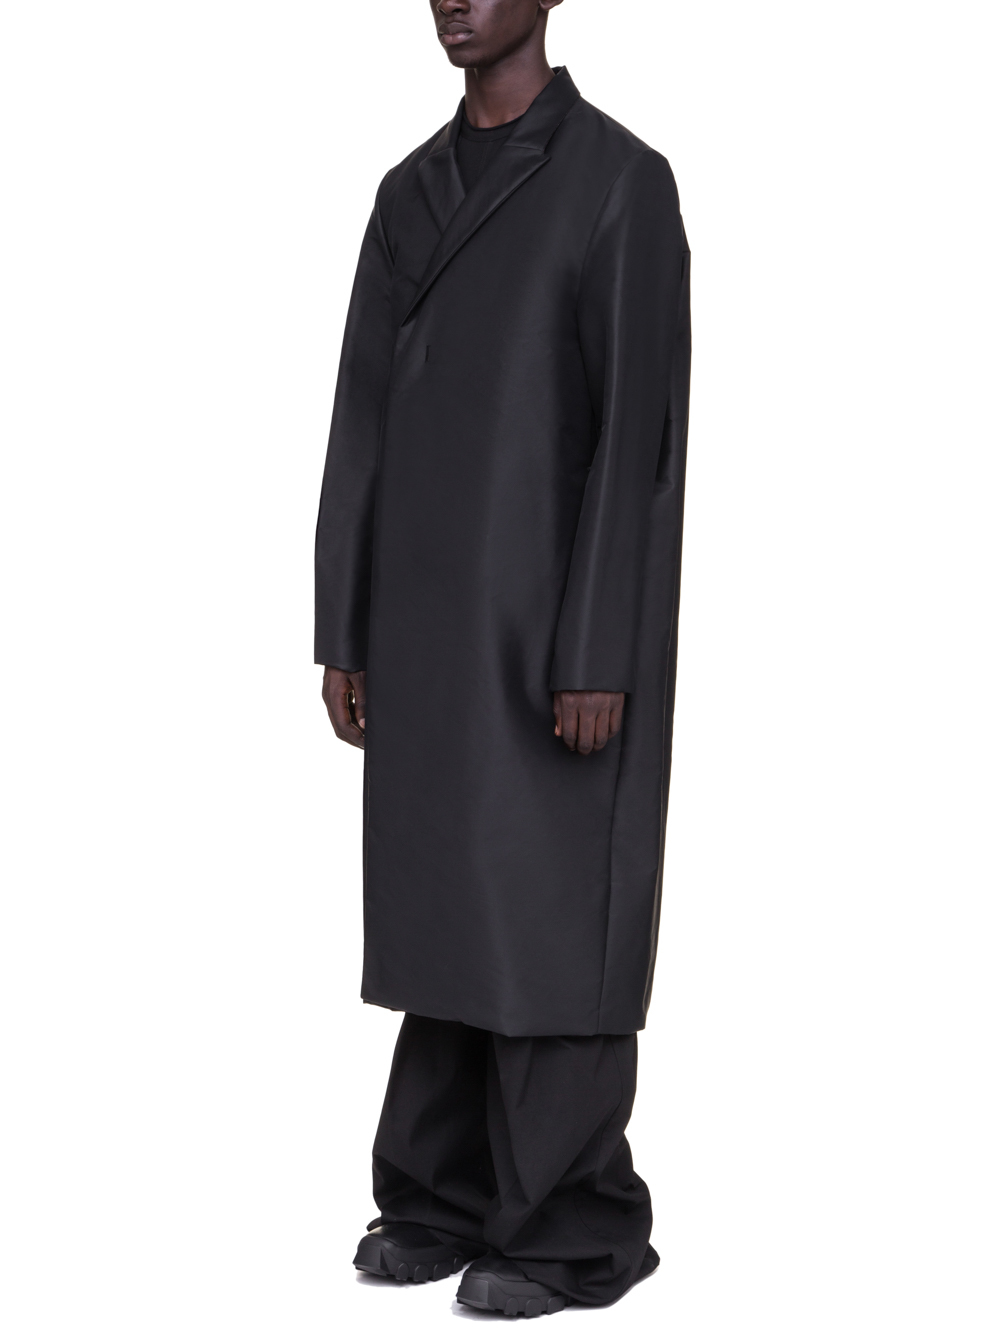 RICK OWENS OFF-THE-RUNWAY BELL COAT IN BLACK TECH CANVAS